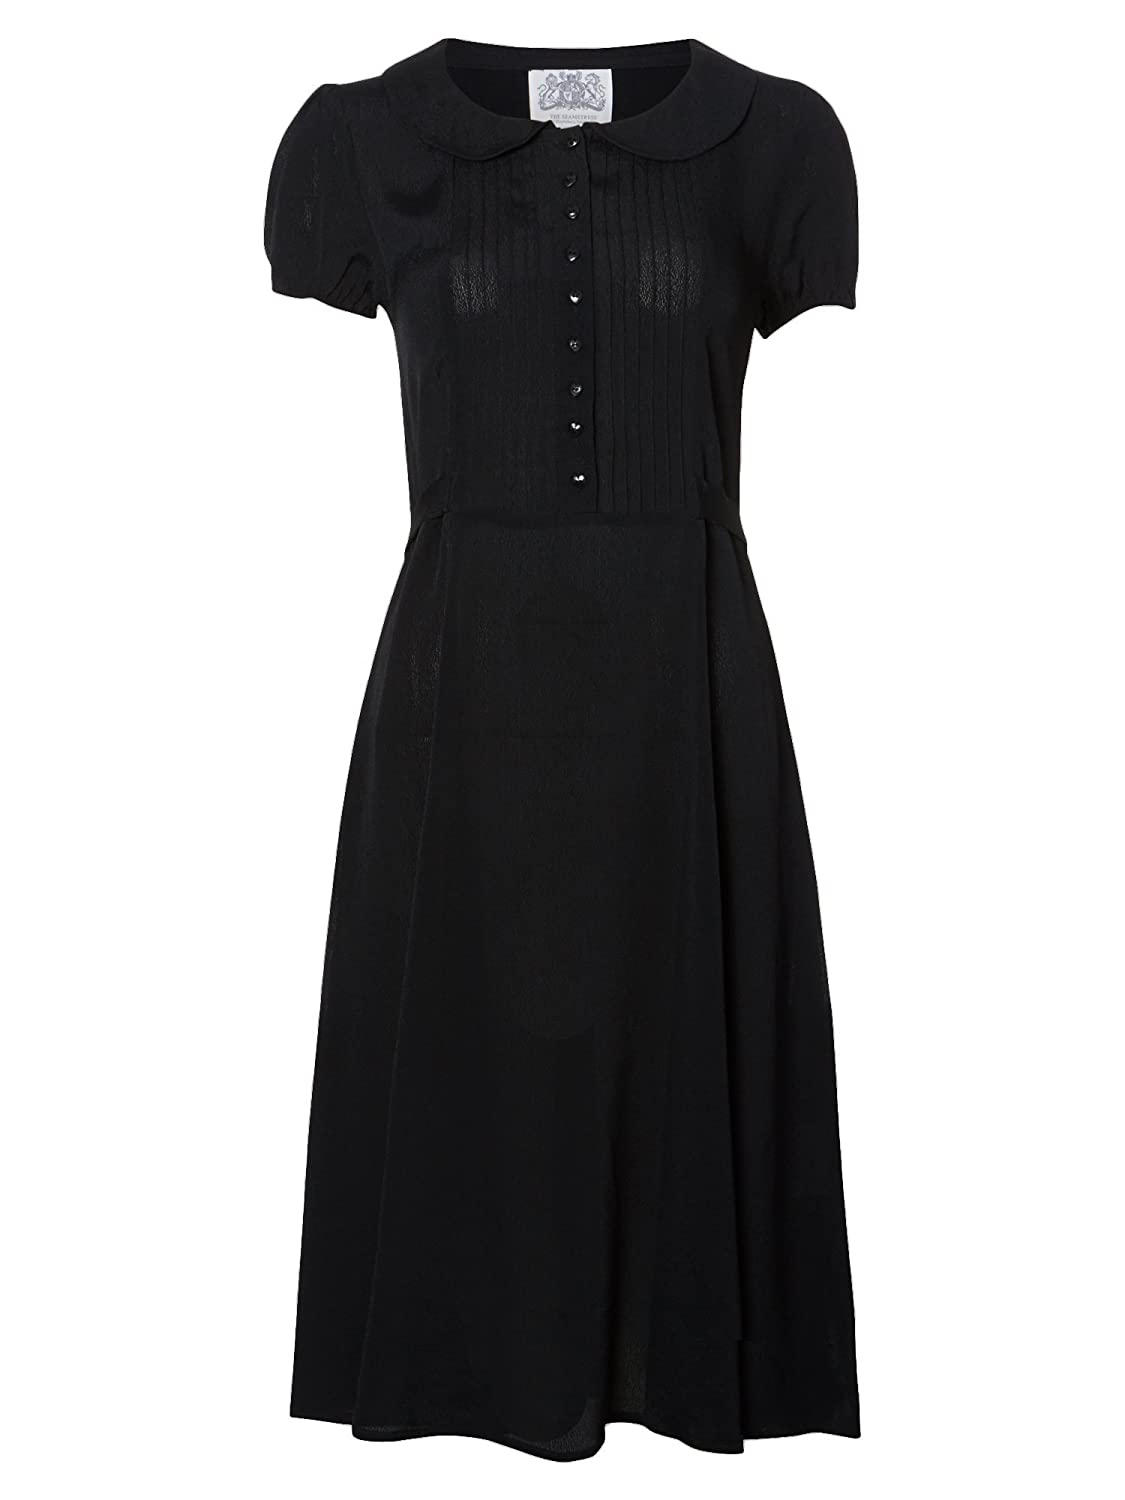 1940s Day Dress Styles, House Dresses 1940s Authentic Vintage Inspired Dorothy Dress in Black £79.00 AT vintagedancer.com